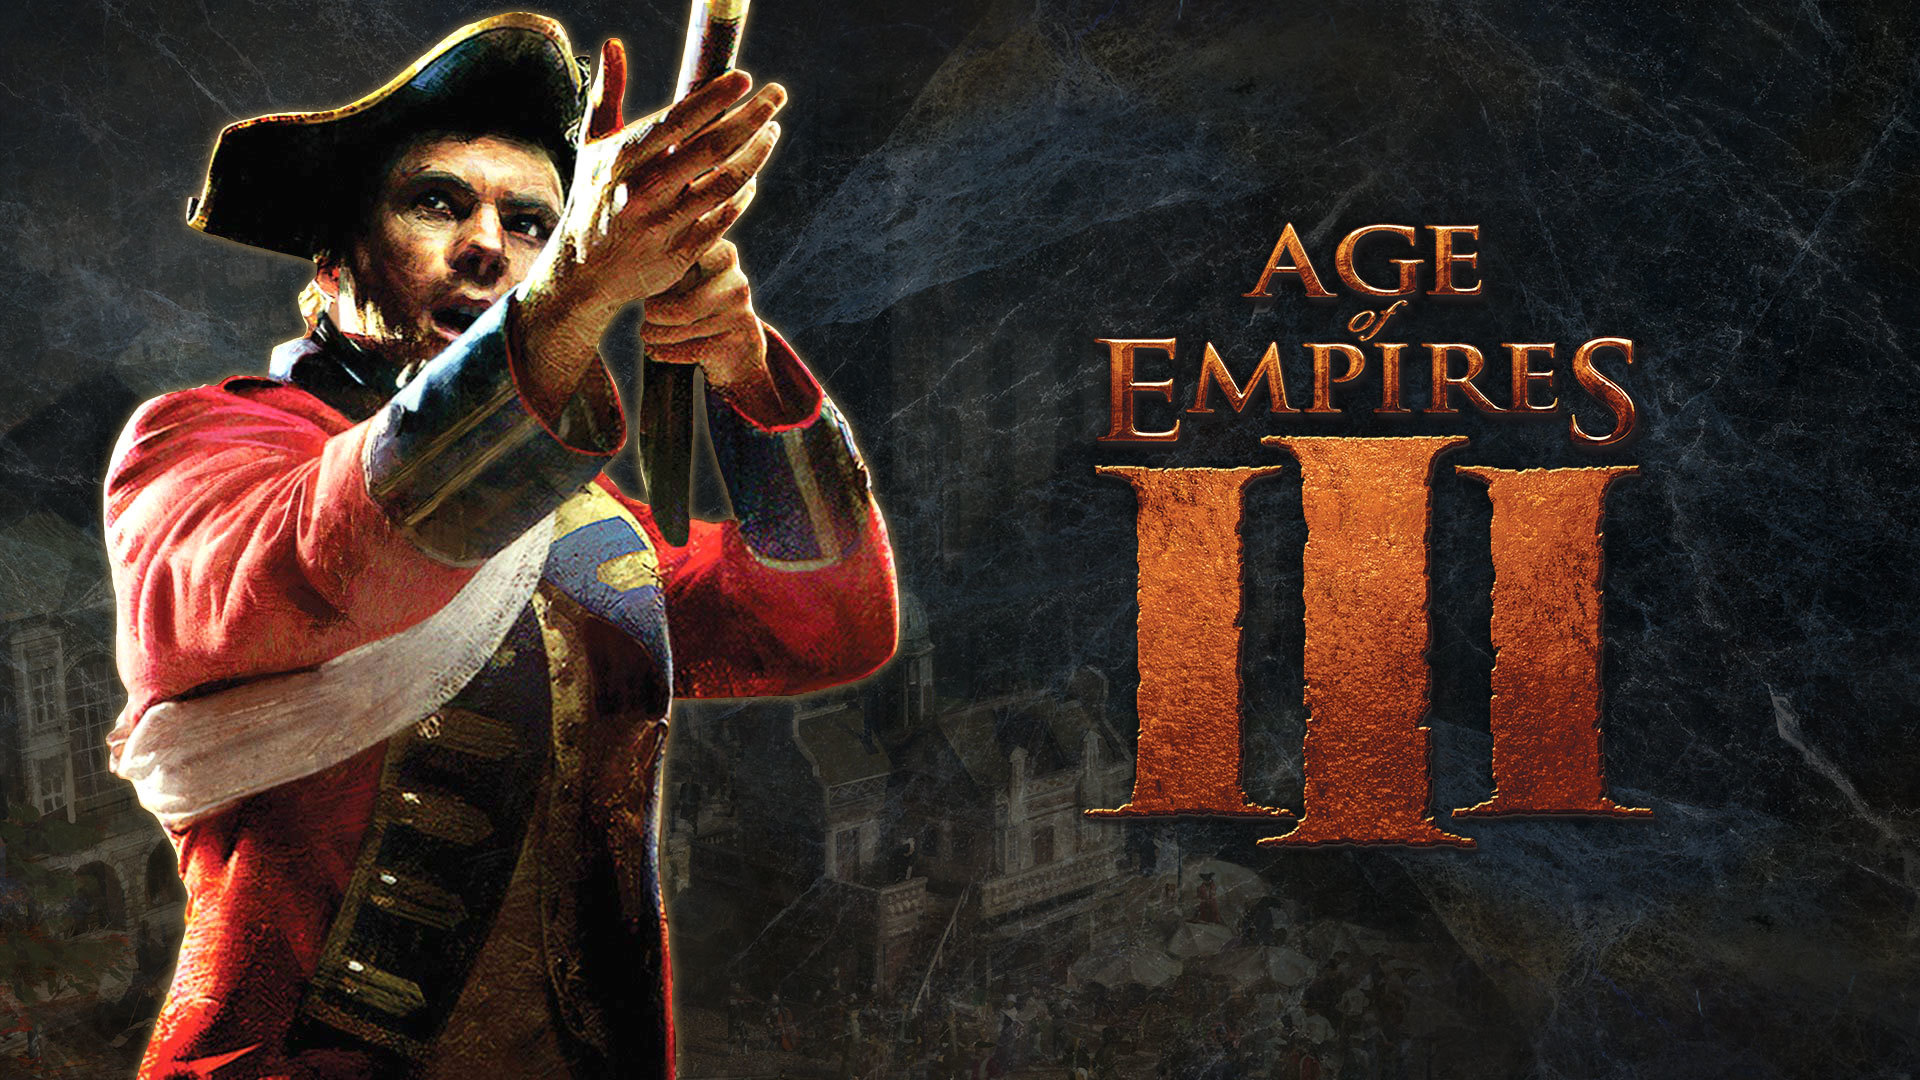 Age Of Empires Iii 2007 Age Of Empires Iii Complete Collection Patch Manual Download Steam News